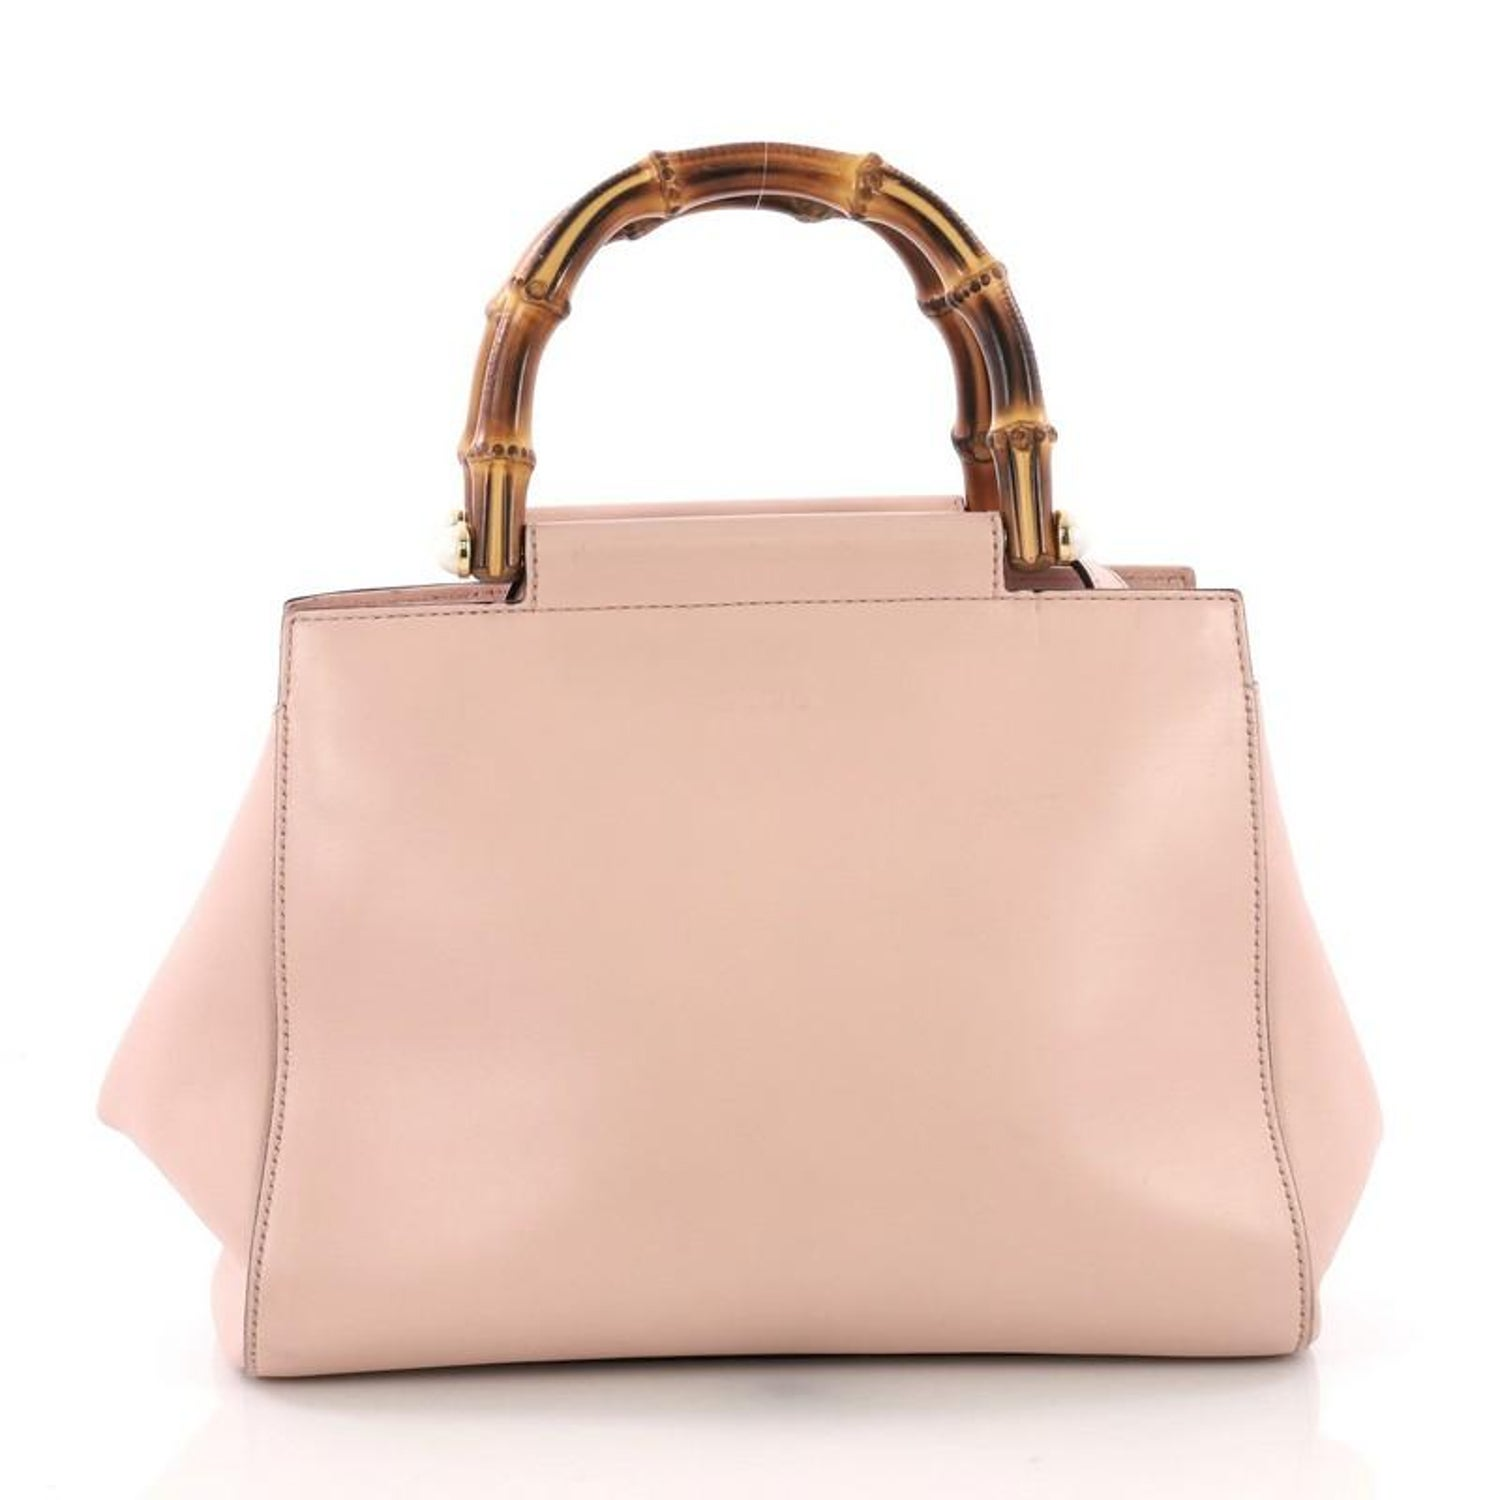 348ec6240c4 Gucci Nymphaea Tote Leather Small For Sale at 1stdibs